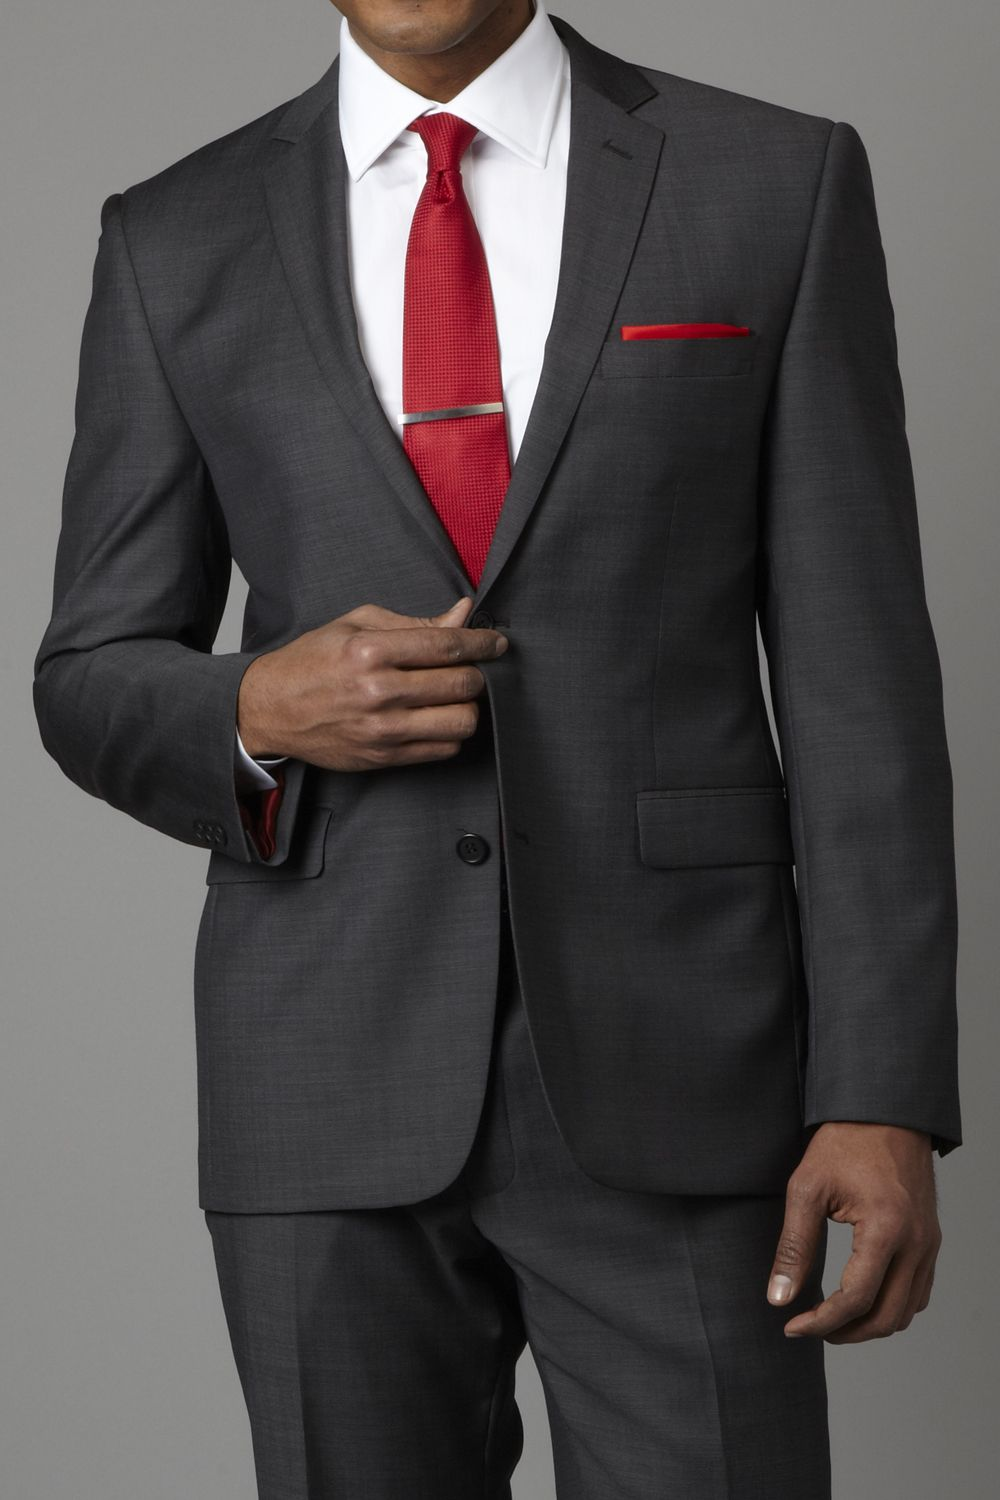 Gucci grey suit/black shirt combination | Clothing | Pinterest ...